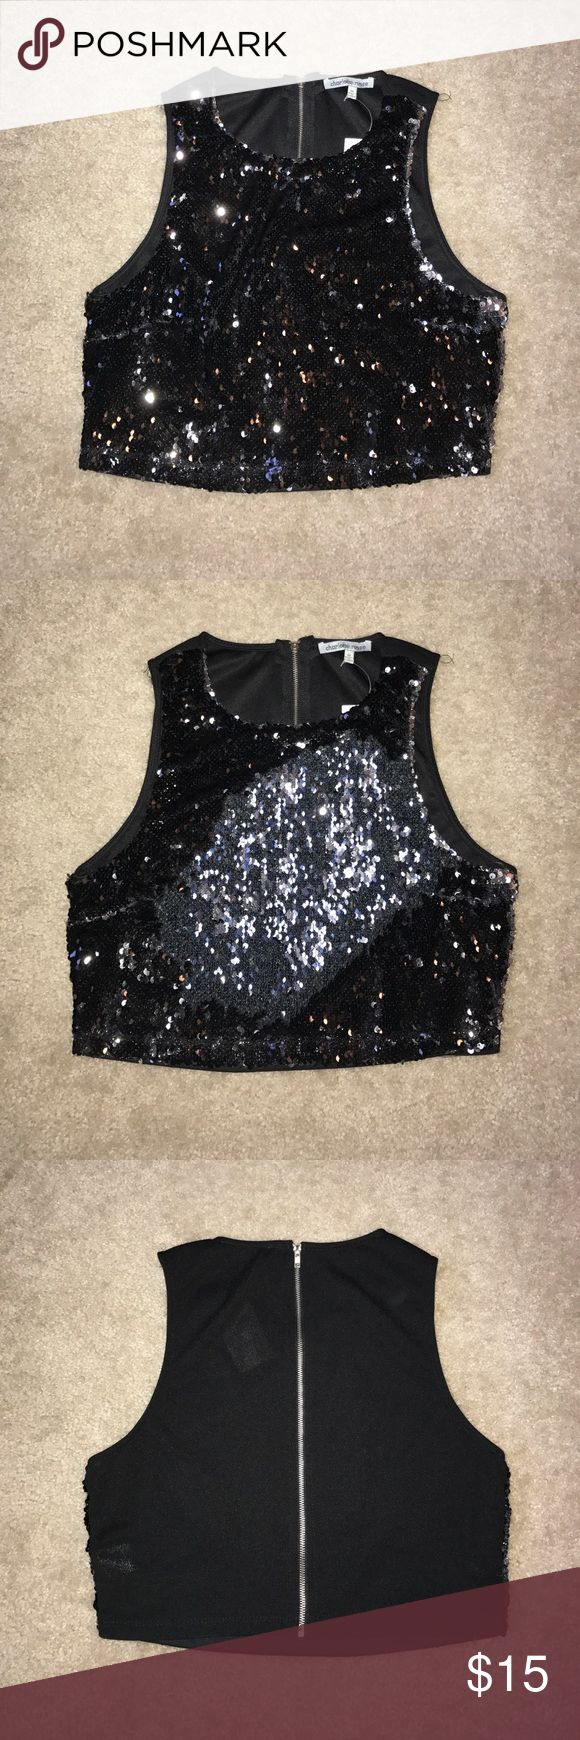 2 toned sequin crop top 2 toned sequin crop top. Rub the sequins one way and it turns black, rub the sequins the other way and it turns silver. Zip up back. NWT. Charlotte Russe Tops Crop Tops